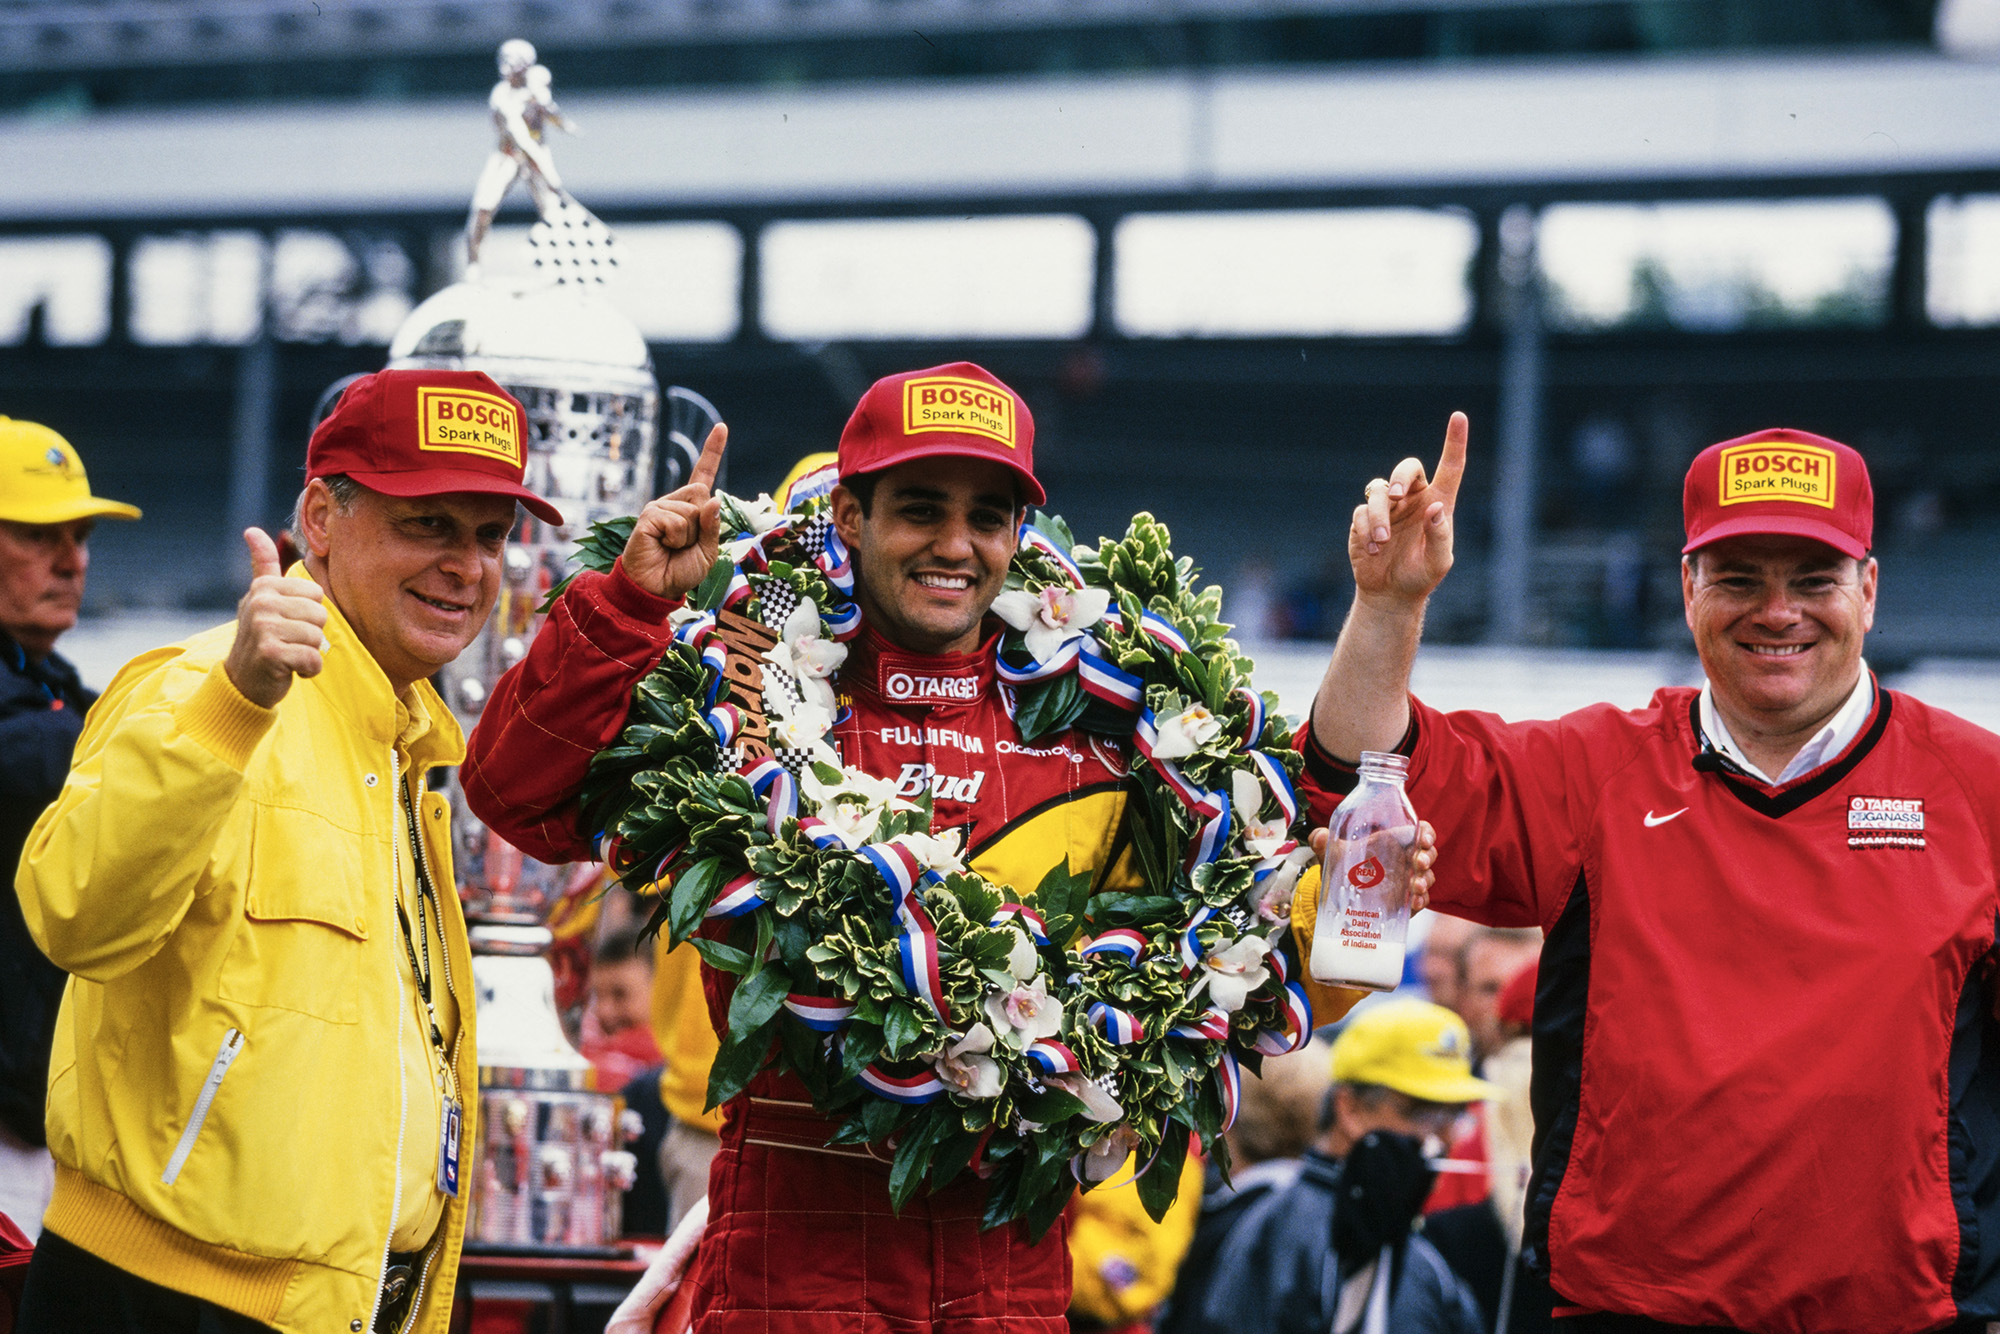 Juan Pablo Montoya celebrating victory in the 2000 Indy 500